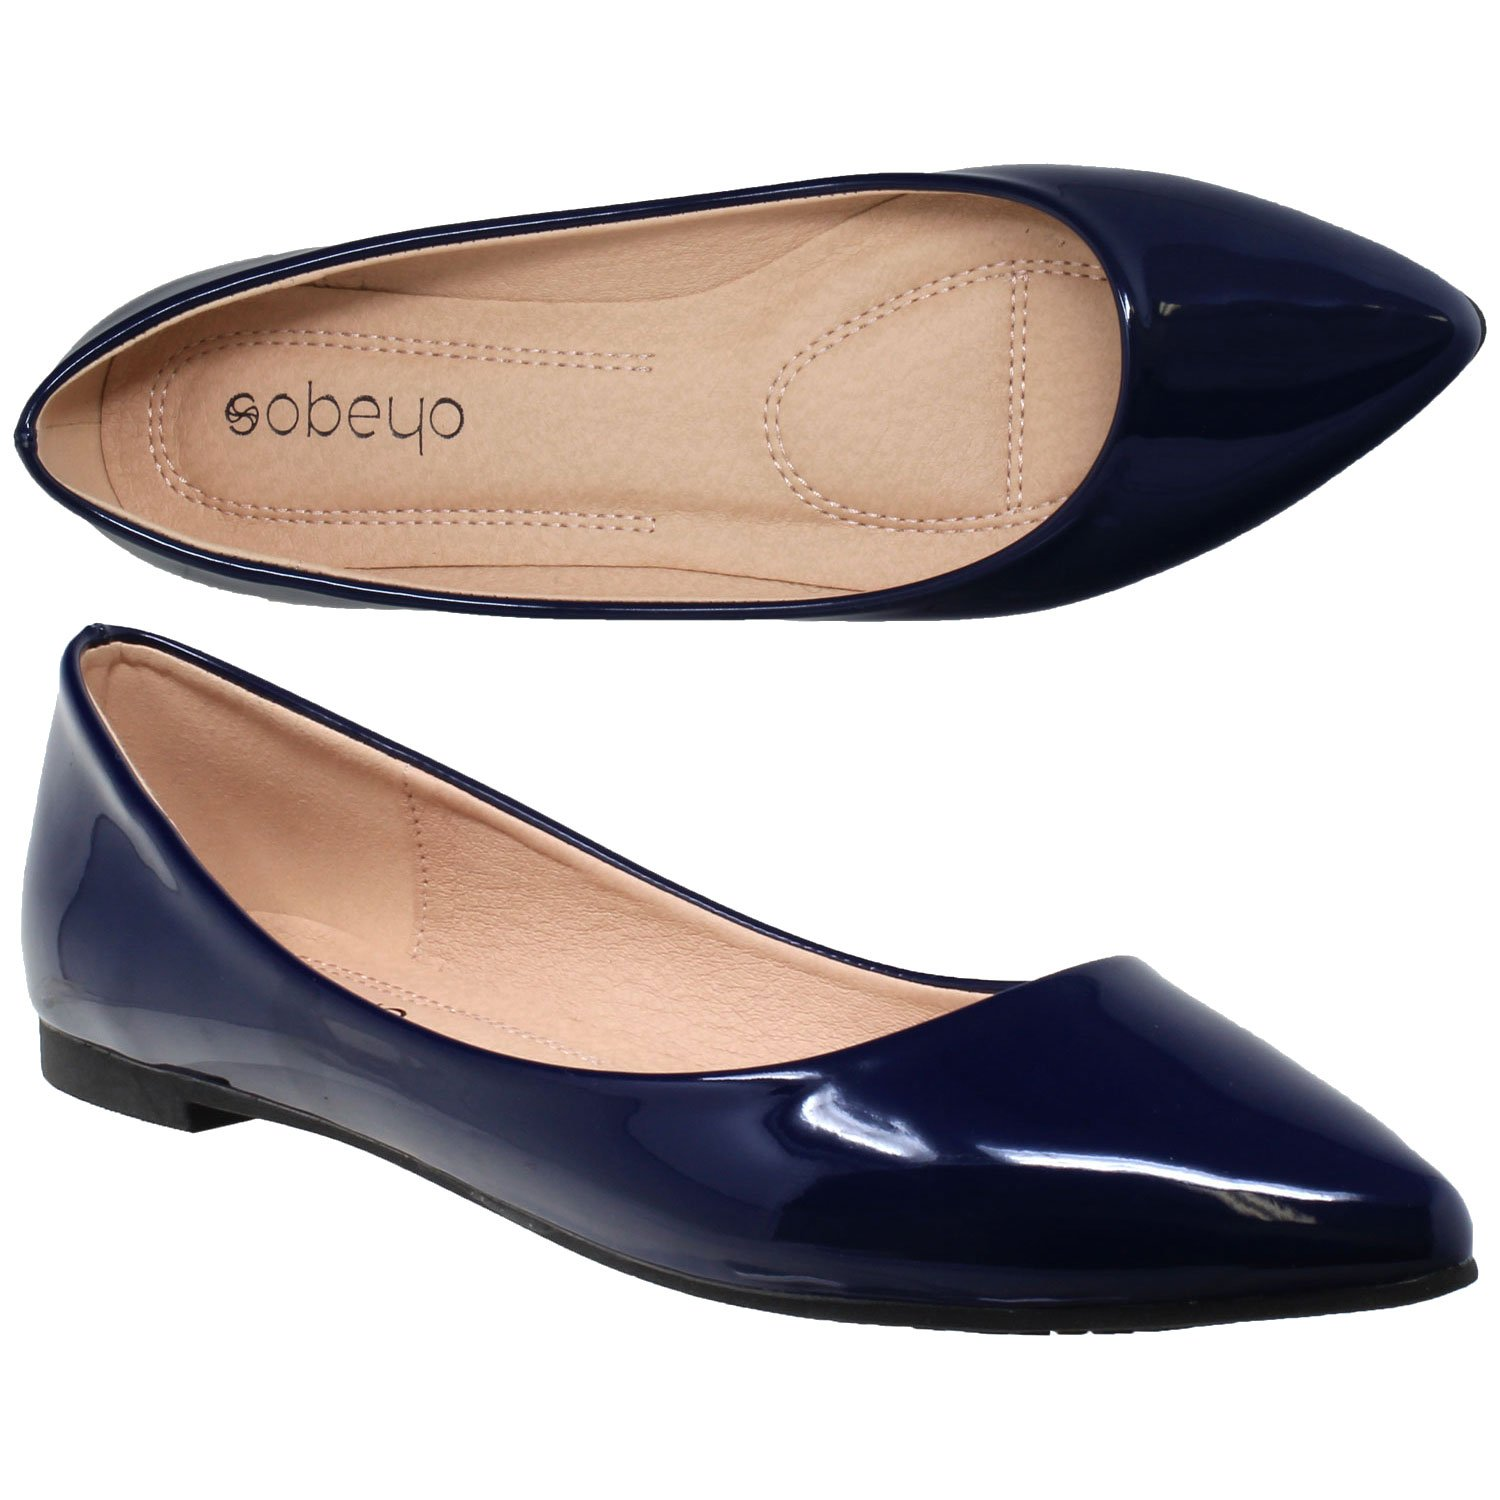 SOBEYO Women Ballet Flats Pointed Toe Slip On Closed Toe Shoes Navy Patent SZ 9